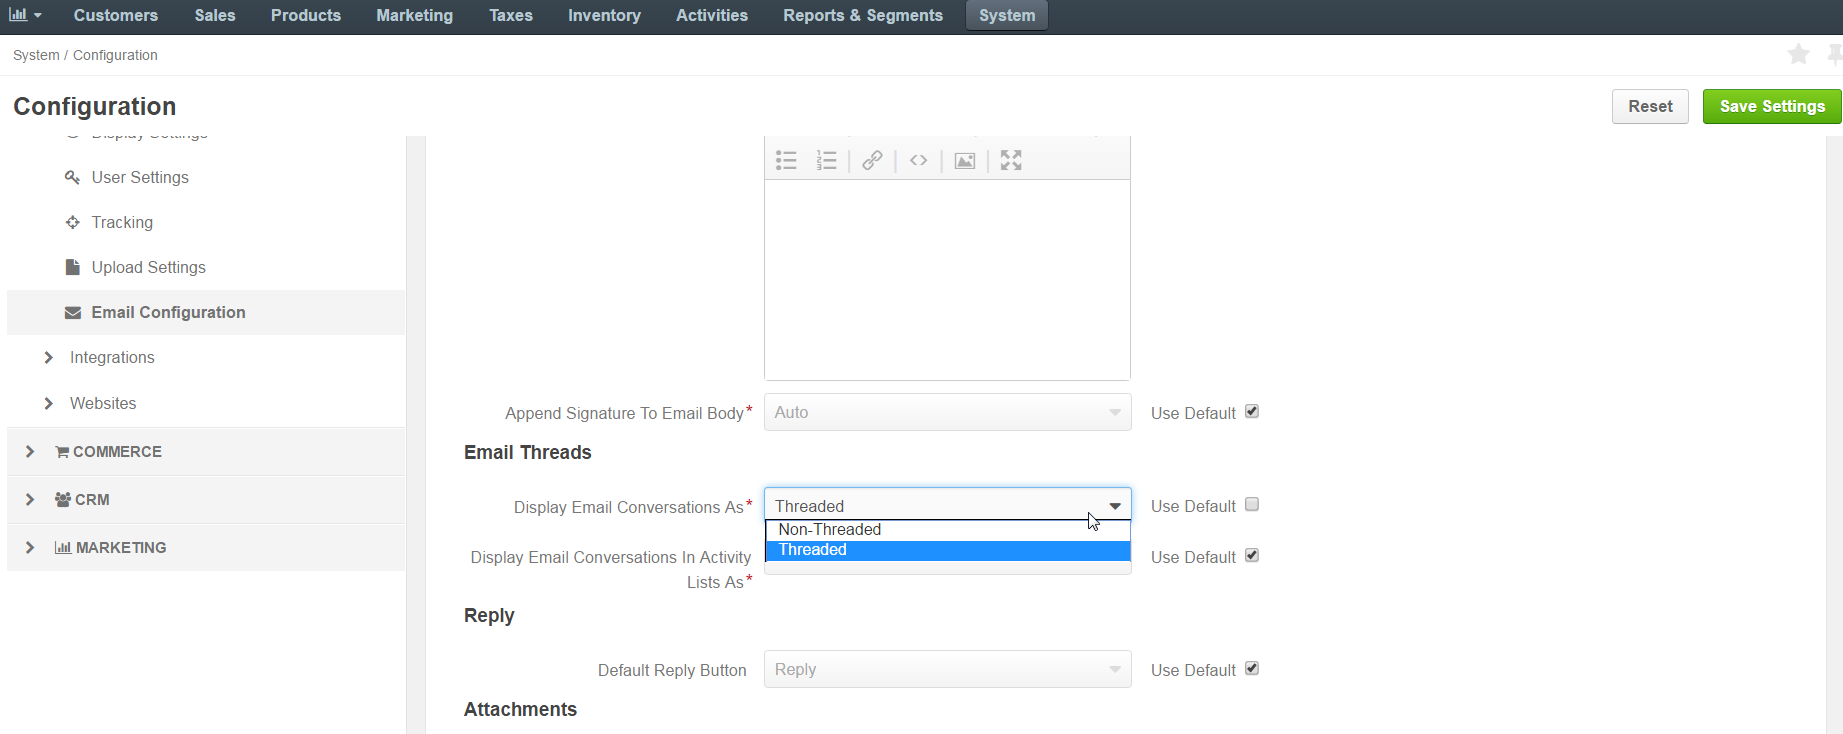 Selecting email threads options in the email configuration